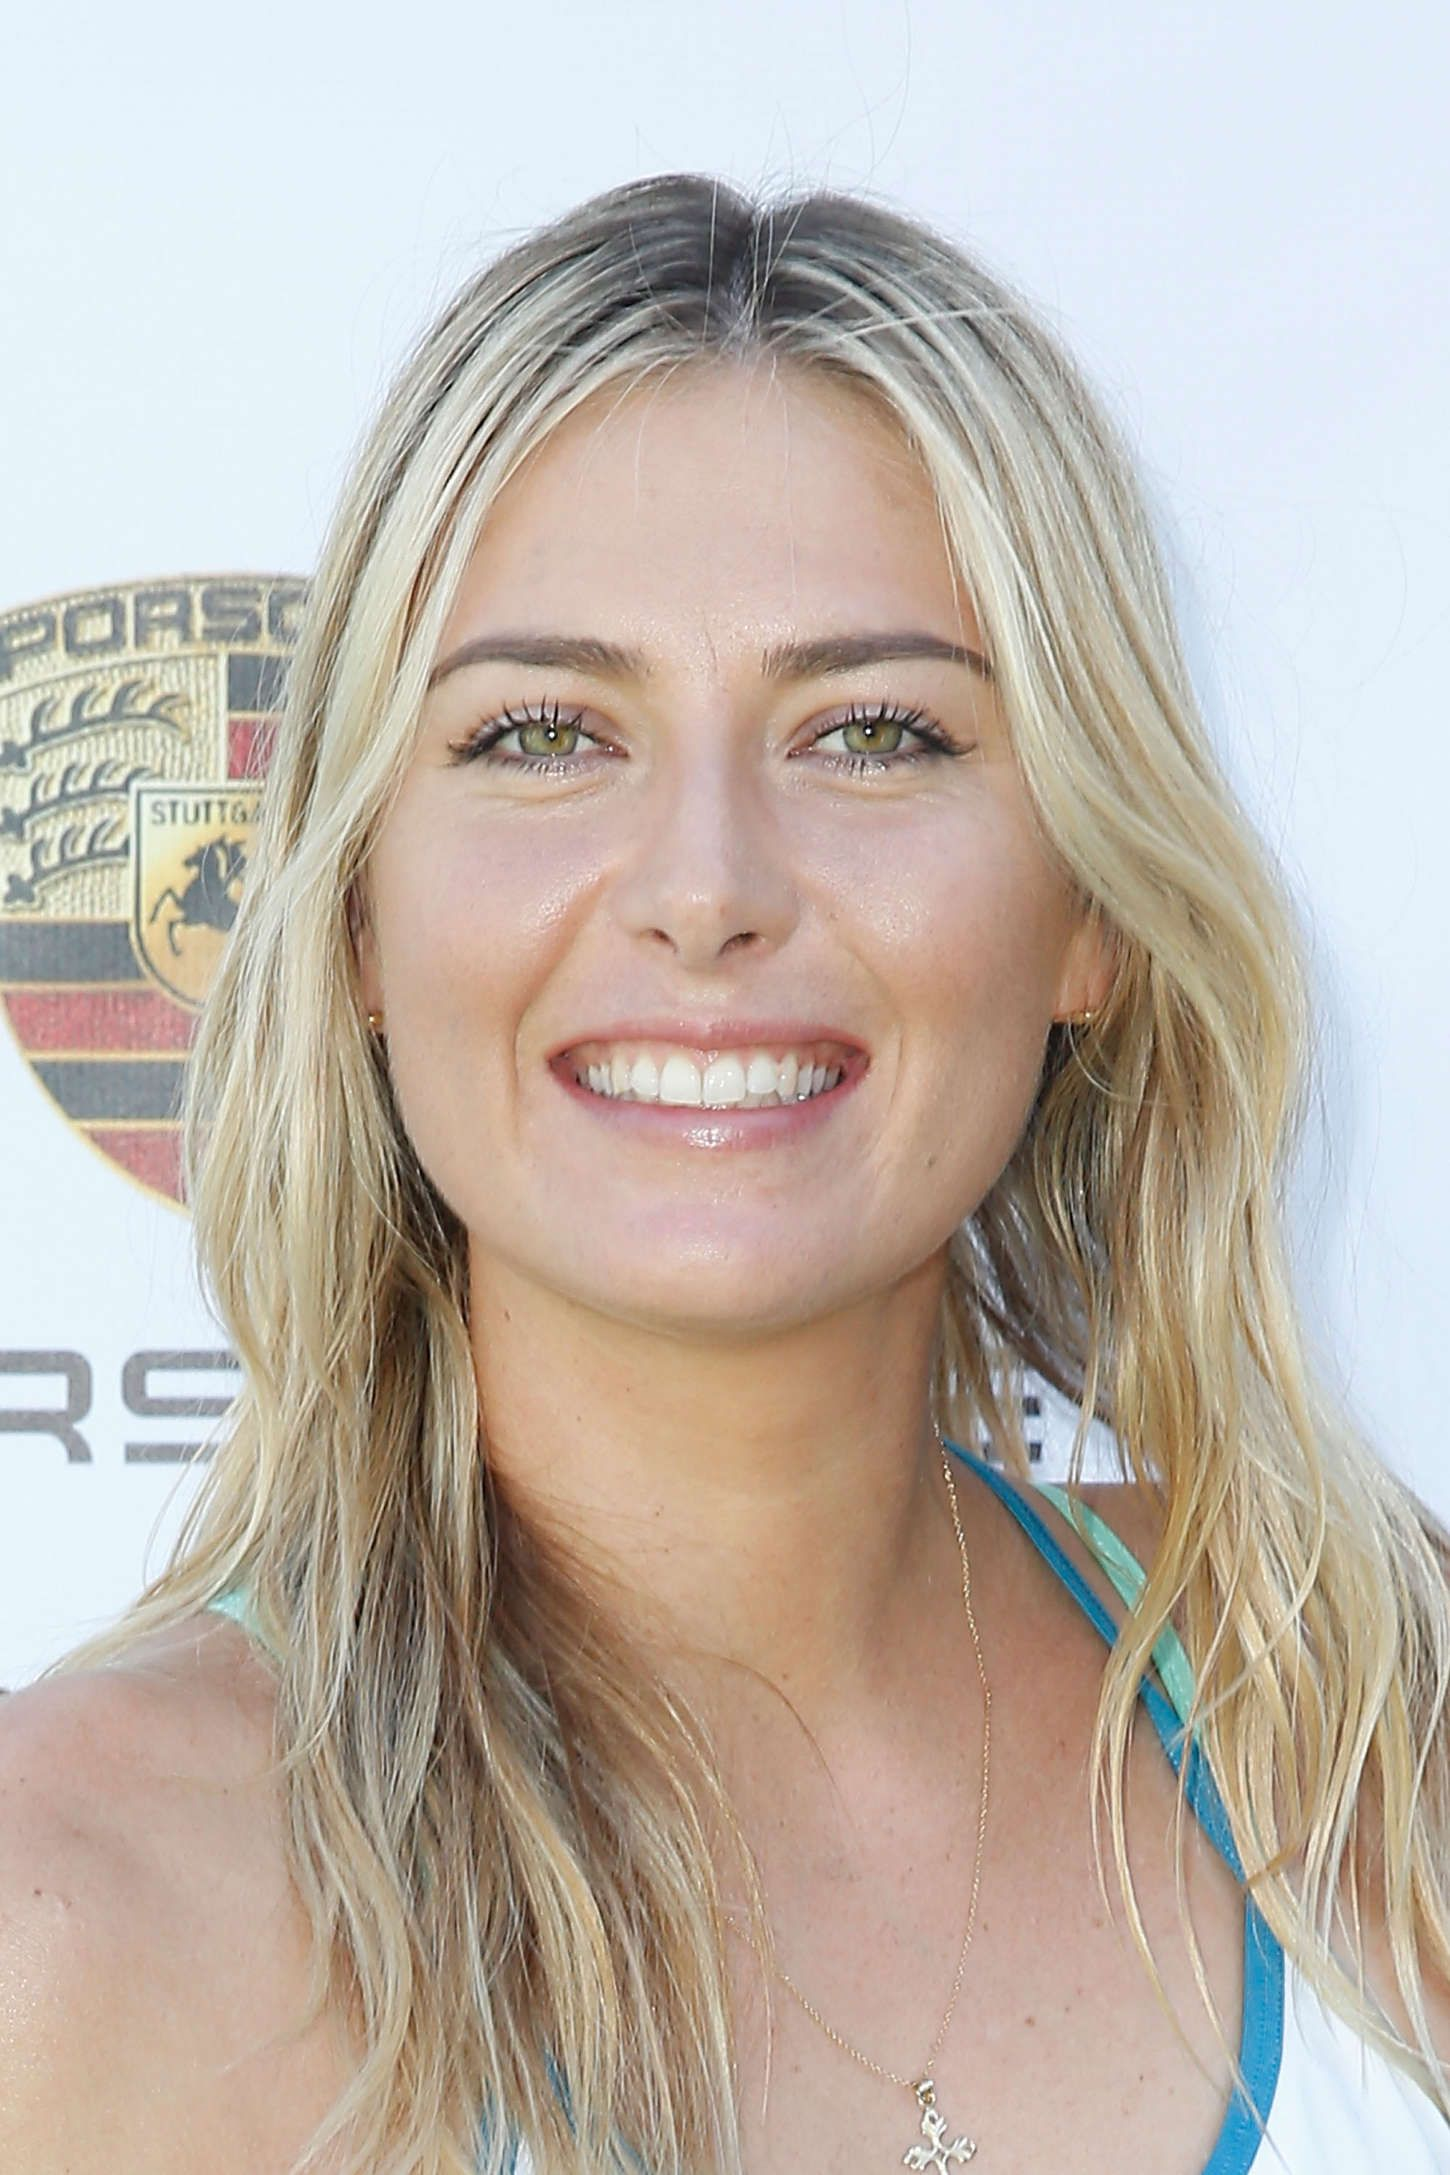 maria sharapova autobiographymaria sharapova instagram, maria sharapova wiki, maria sharapova biography, maria sharapova wikipedia, maria sharapova twitter, maria sharapova boyfriend, maria sharapova interview, maria sharapova 2017, maria sharapova vk, maria sharapova net worth, maria sharapova facebook, maria sharapova 2016, maria sharapova parfum, maria sharapova news, maria sharapova sports illustrated, maria sharapova nike, maria sharapova and grigor dimitrov, maria sharapova autobiography, maria sharapova house, maria sharapova husband